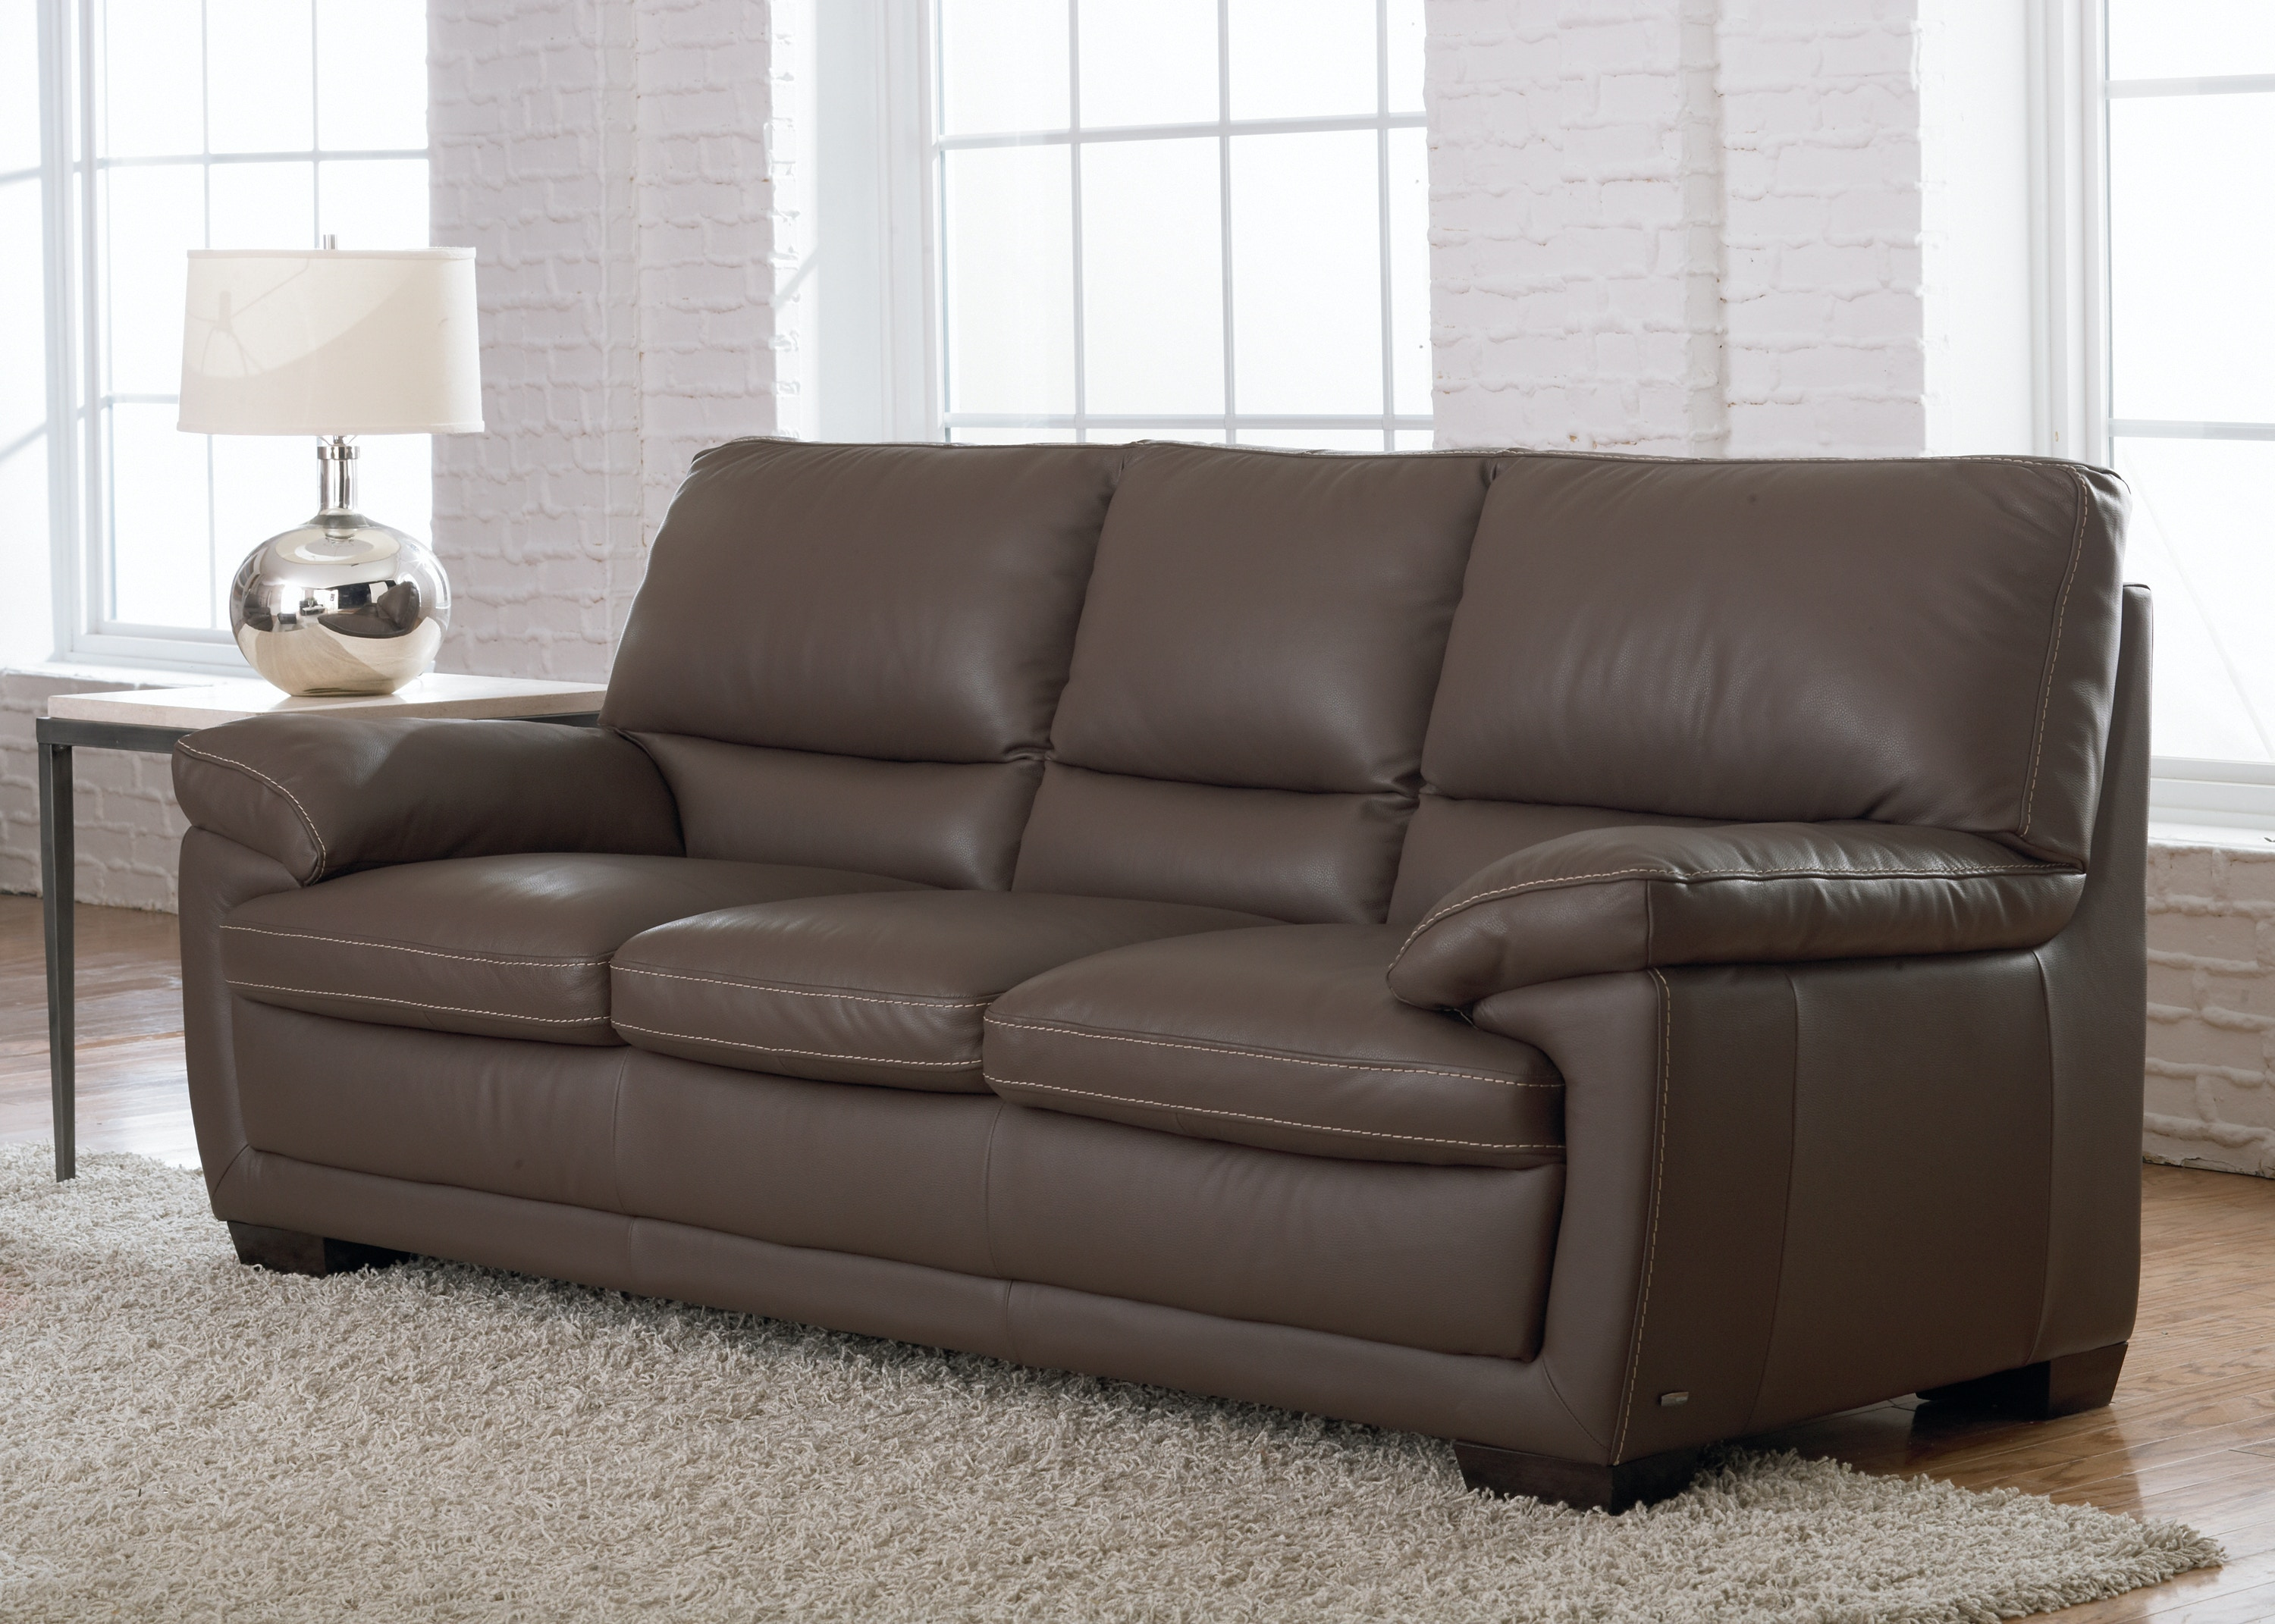 Natuzzi Transitional Italian Leather Sofa B674 Part 89